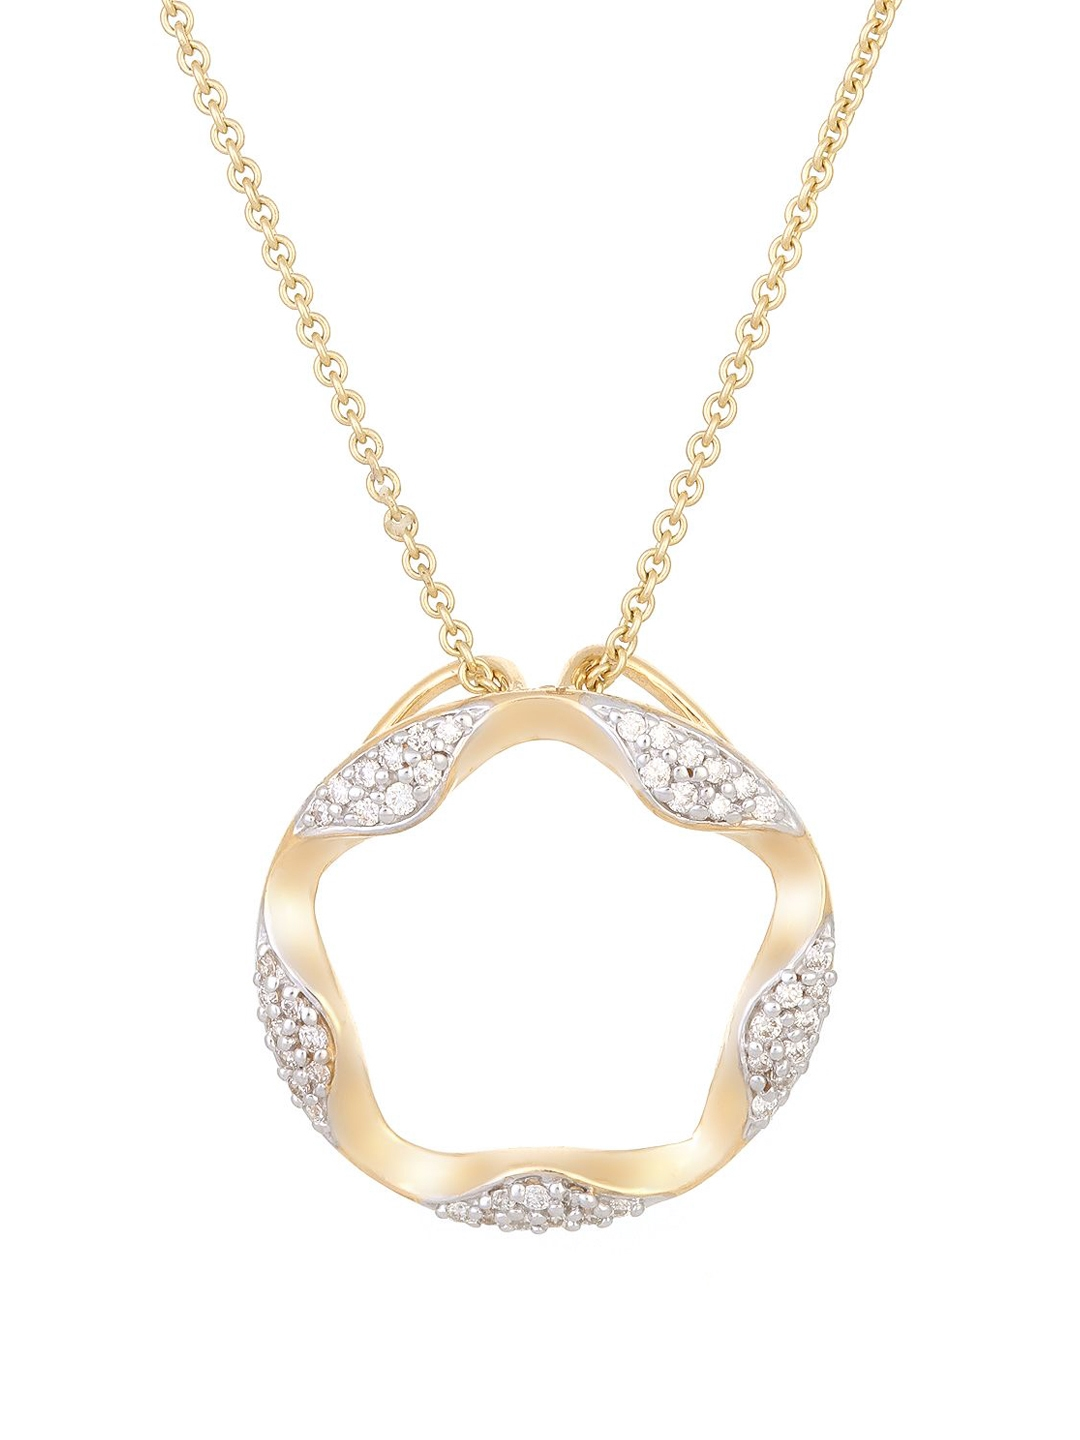 Mia by Tanishq 2.02 g 14KT Gold Precious Pendant with Diamonds Mia by Tanishq Pendant Diamond